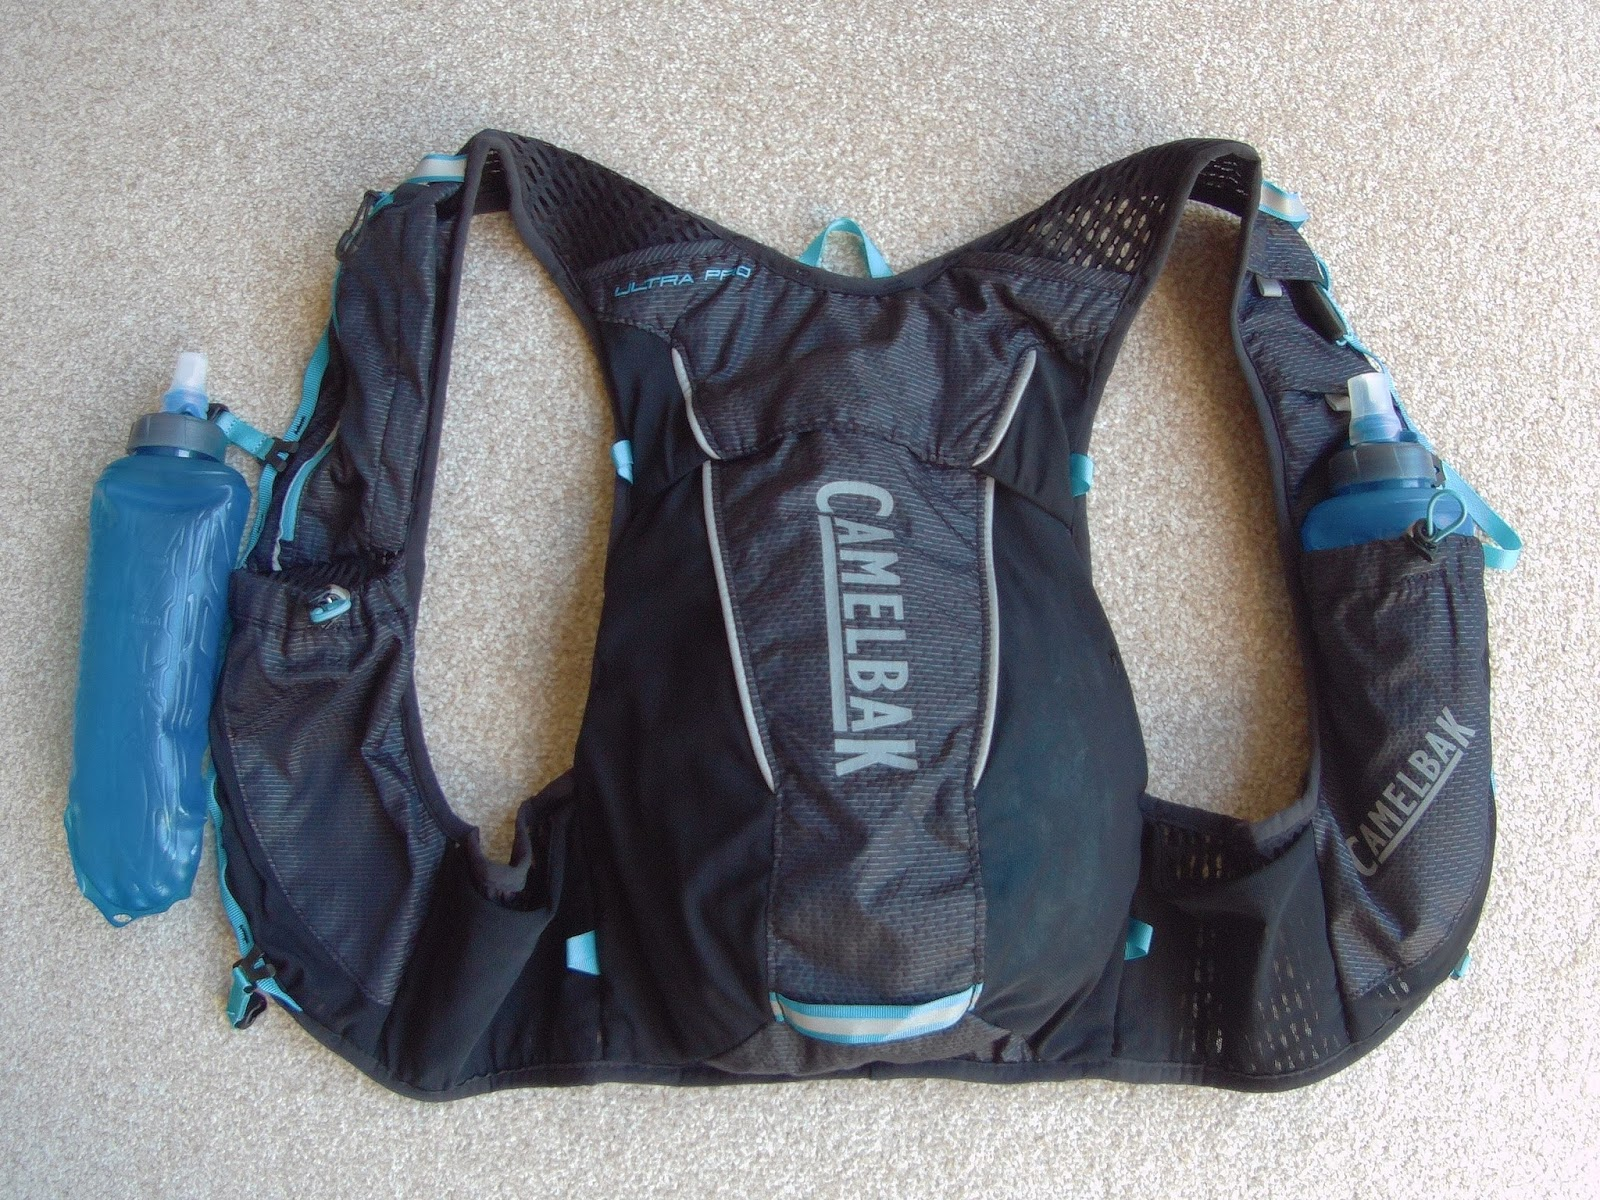 d6da7ceb66 I became very interested earlier this year when I noticed that Camelbak had  produced a minimalist race vest designed for use with soft flasks, the Ultra  Pro ...